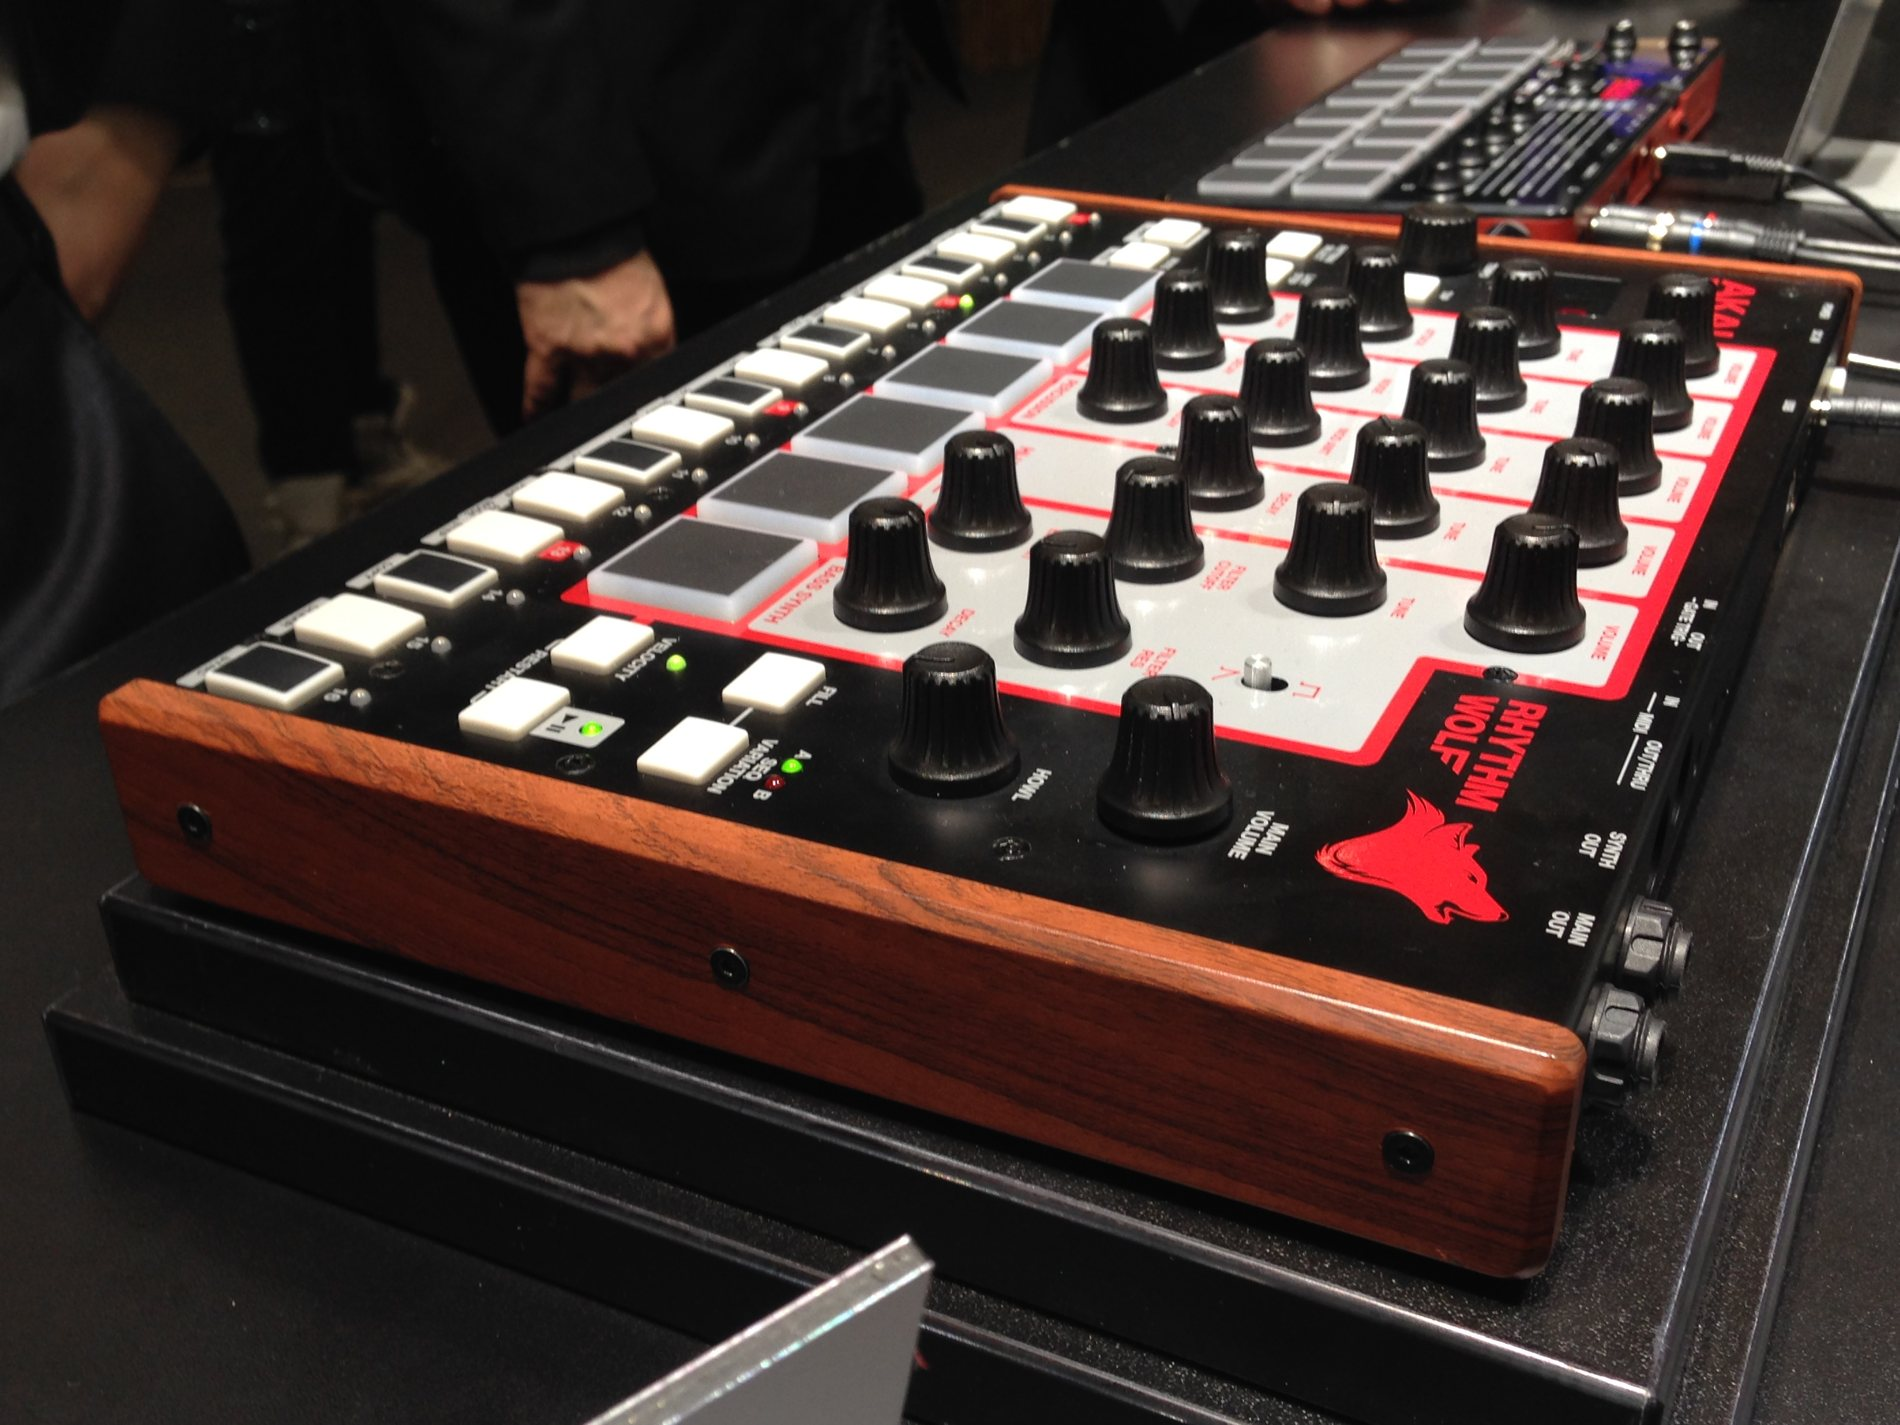 akai posts sound video of 199 rhythm wolf drum machine hungry for a review cdm create. Black Bedroom Furniture Sets. Home Design Ideas